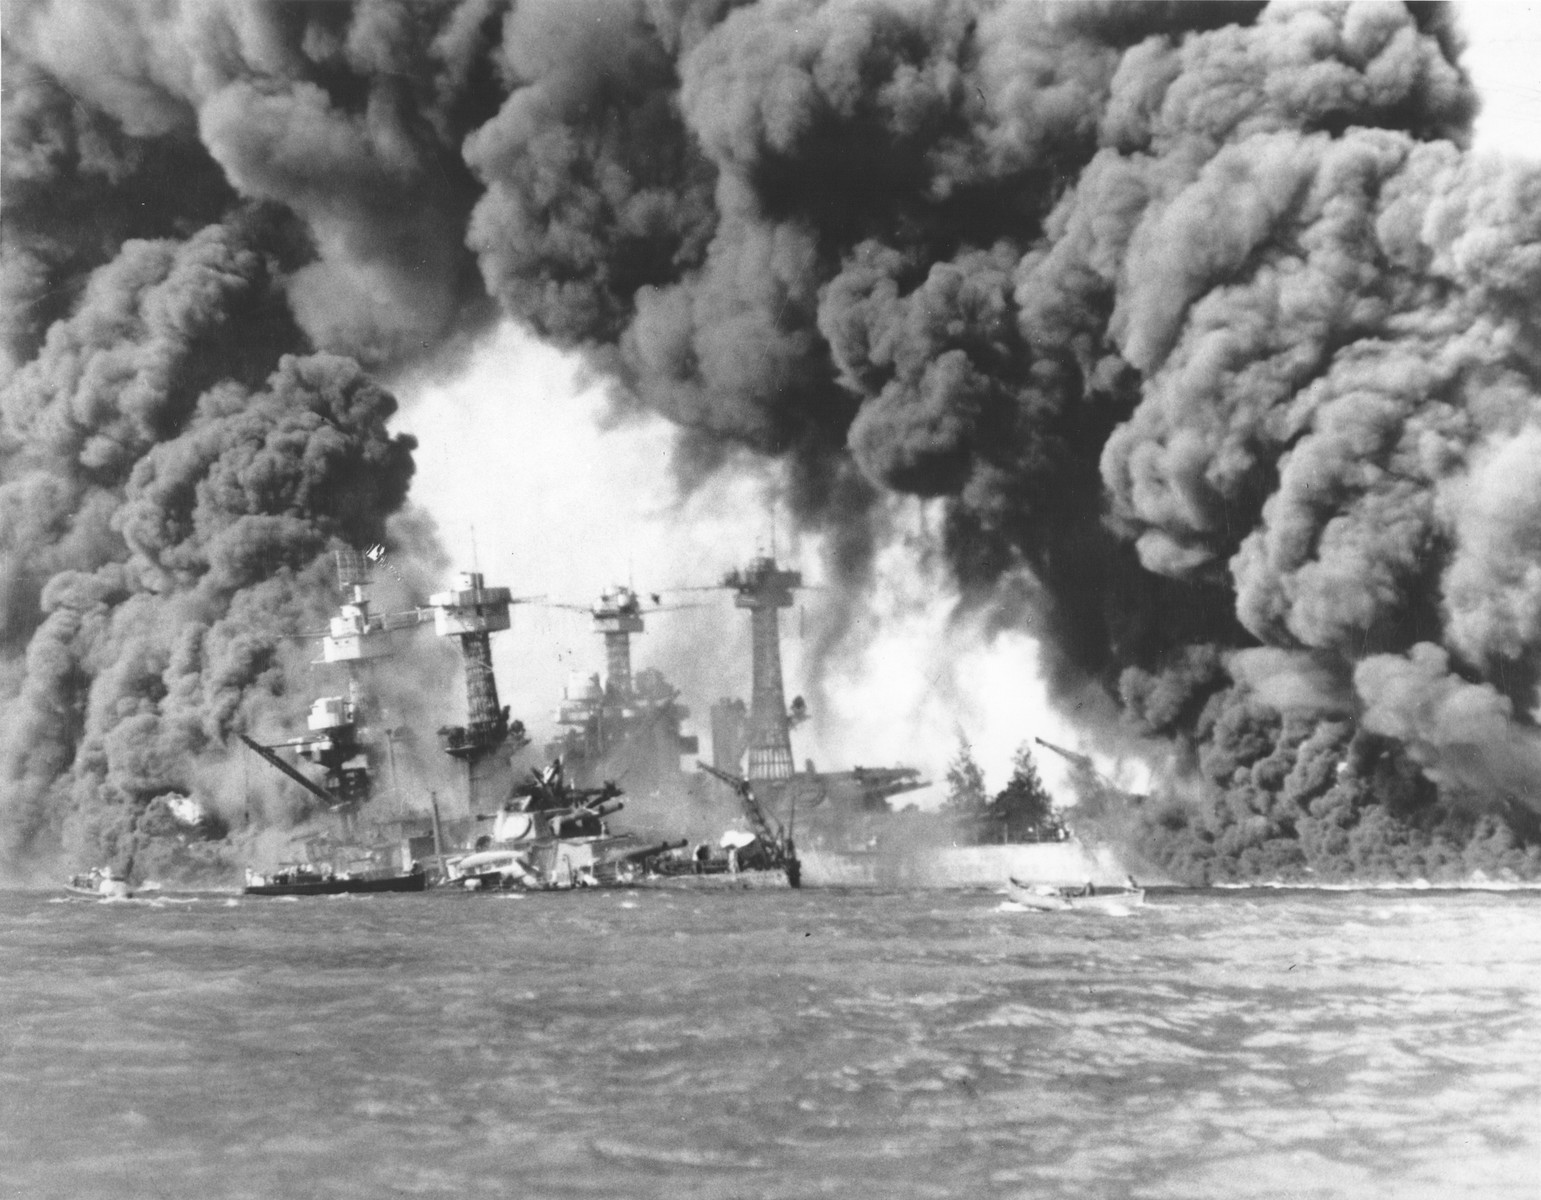 Smoke billows out from U.S. ships hit during the Japanese air attack on Pearl Harbor.